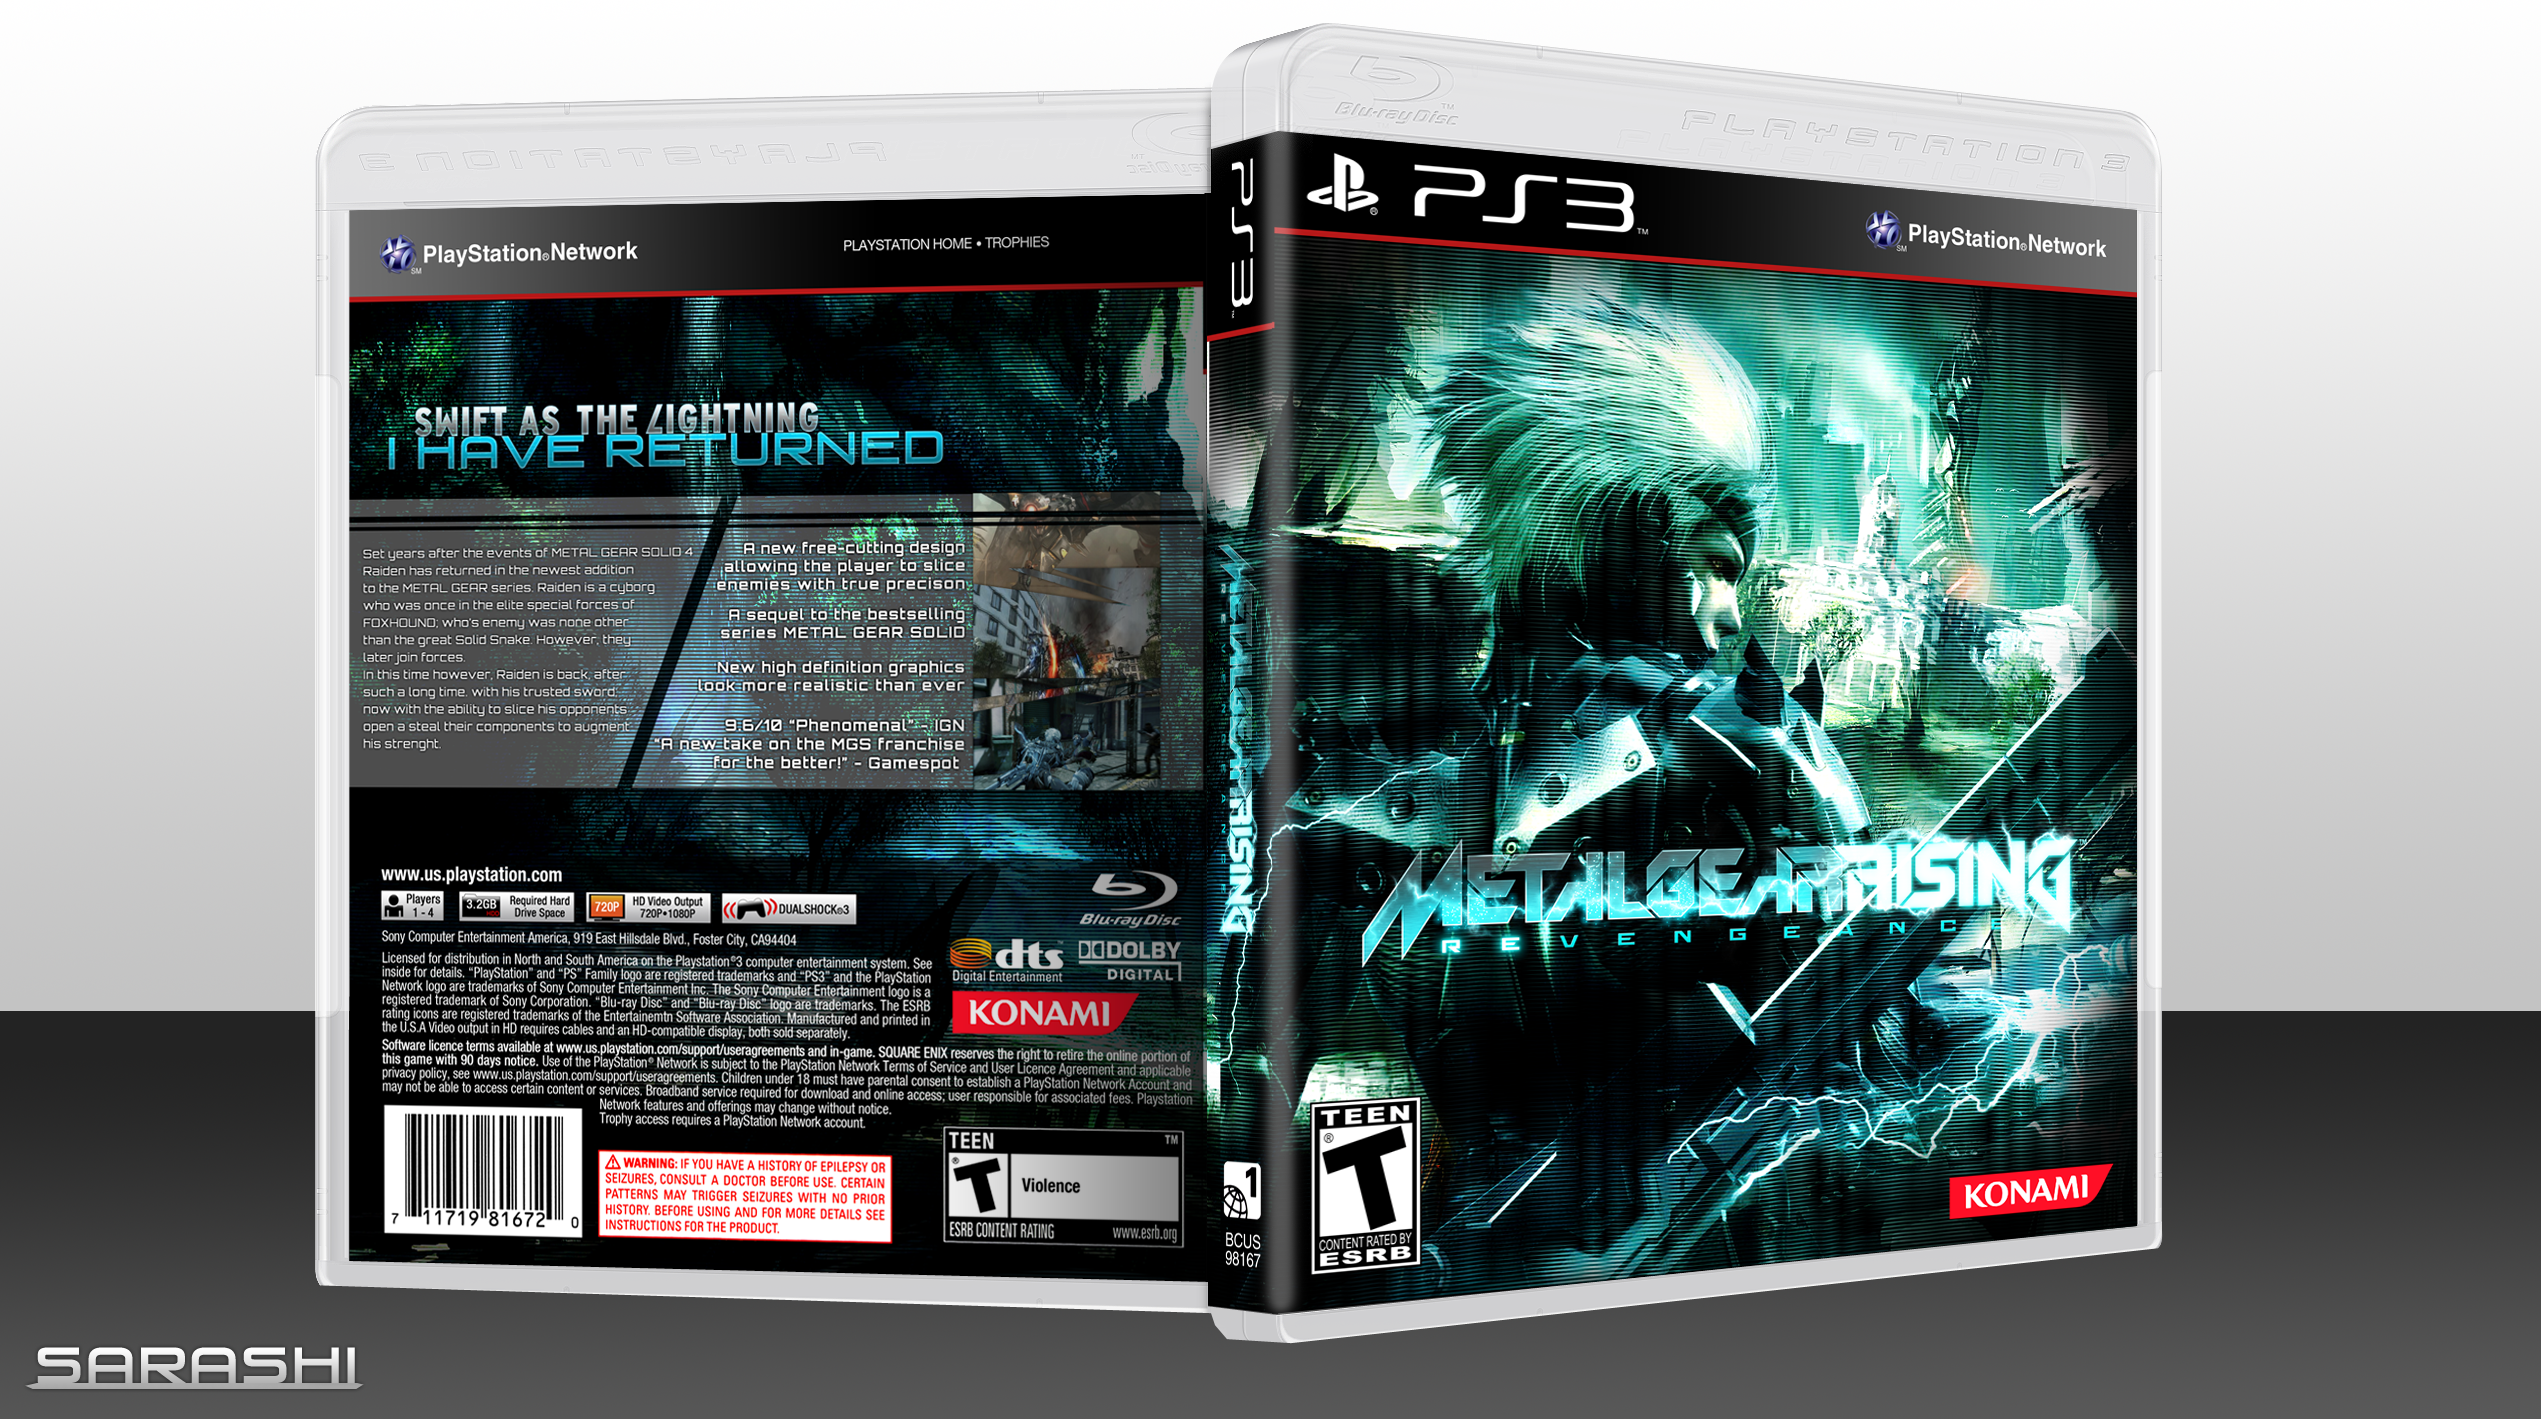 PlayStation 3   187  Metal Gear Rising  Revengeance Box CoverMetal Gear Rising Revengeance Cover Ps3